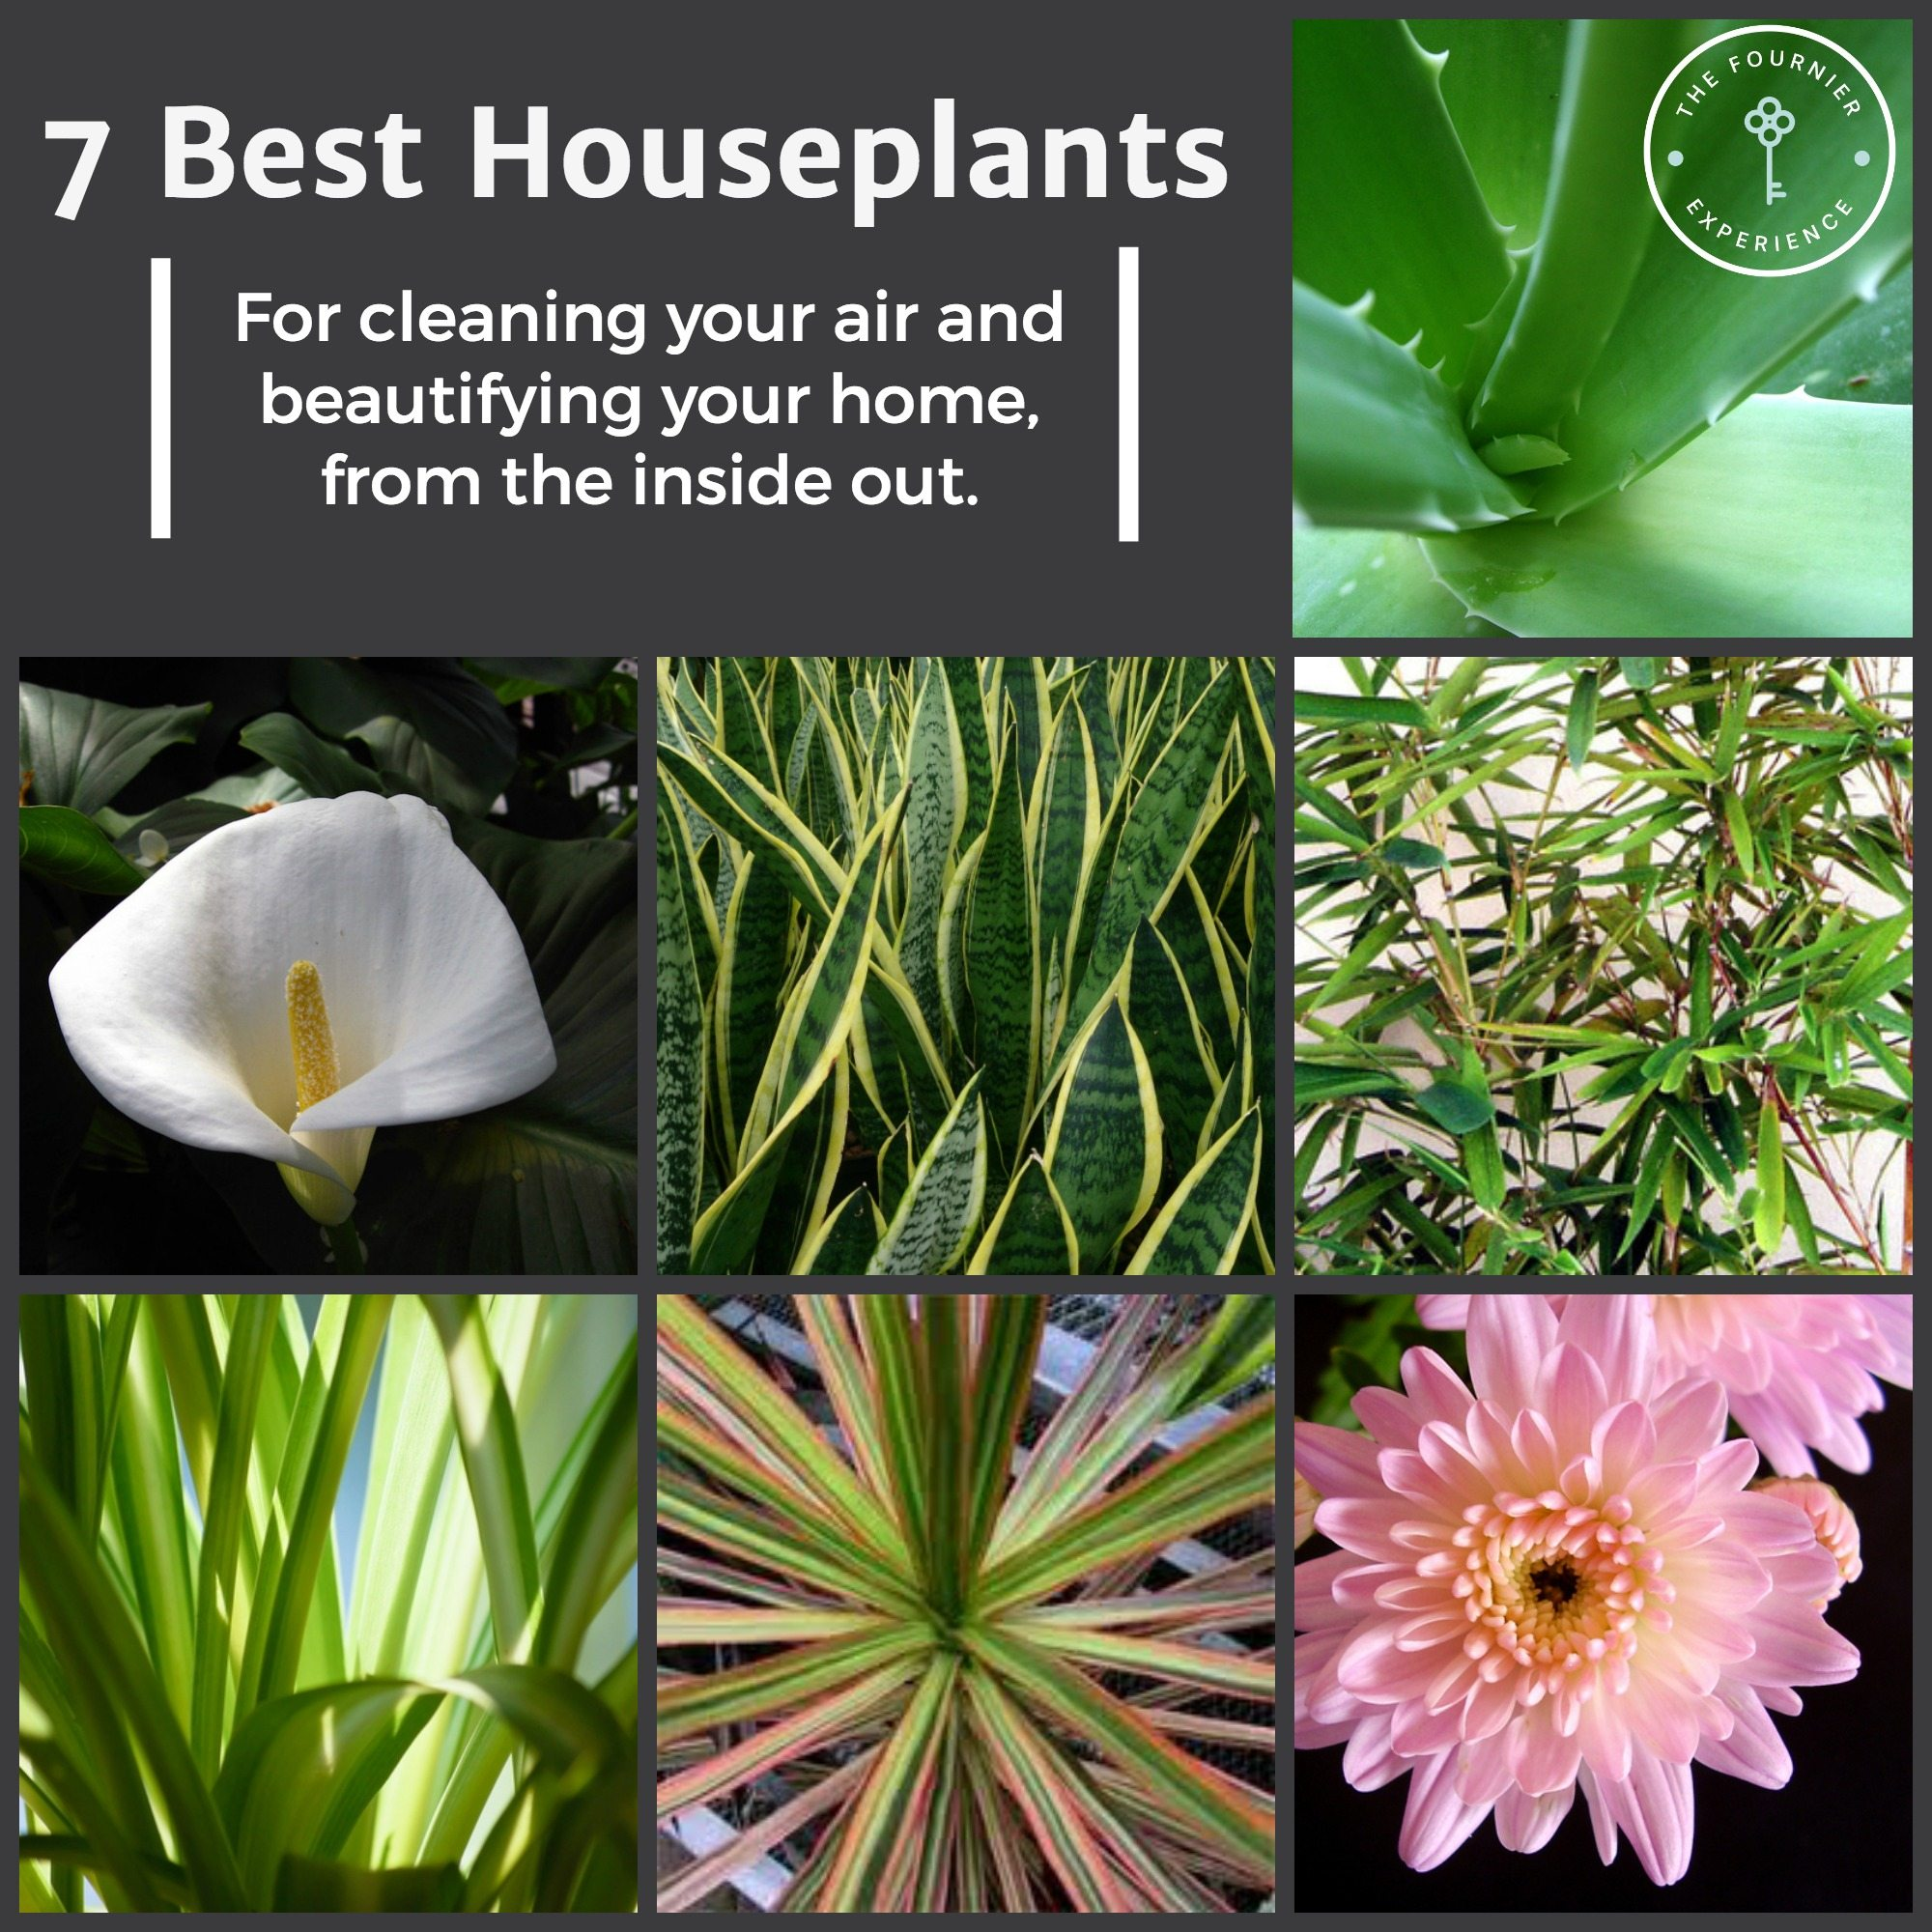 Best Houseplants | The Fournier Experience